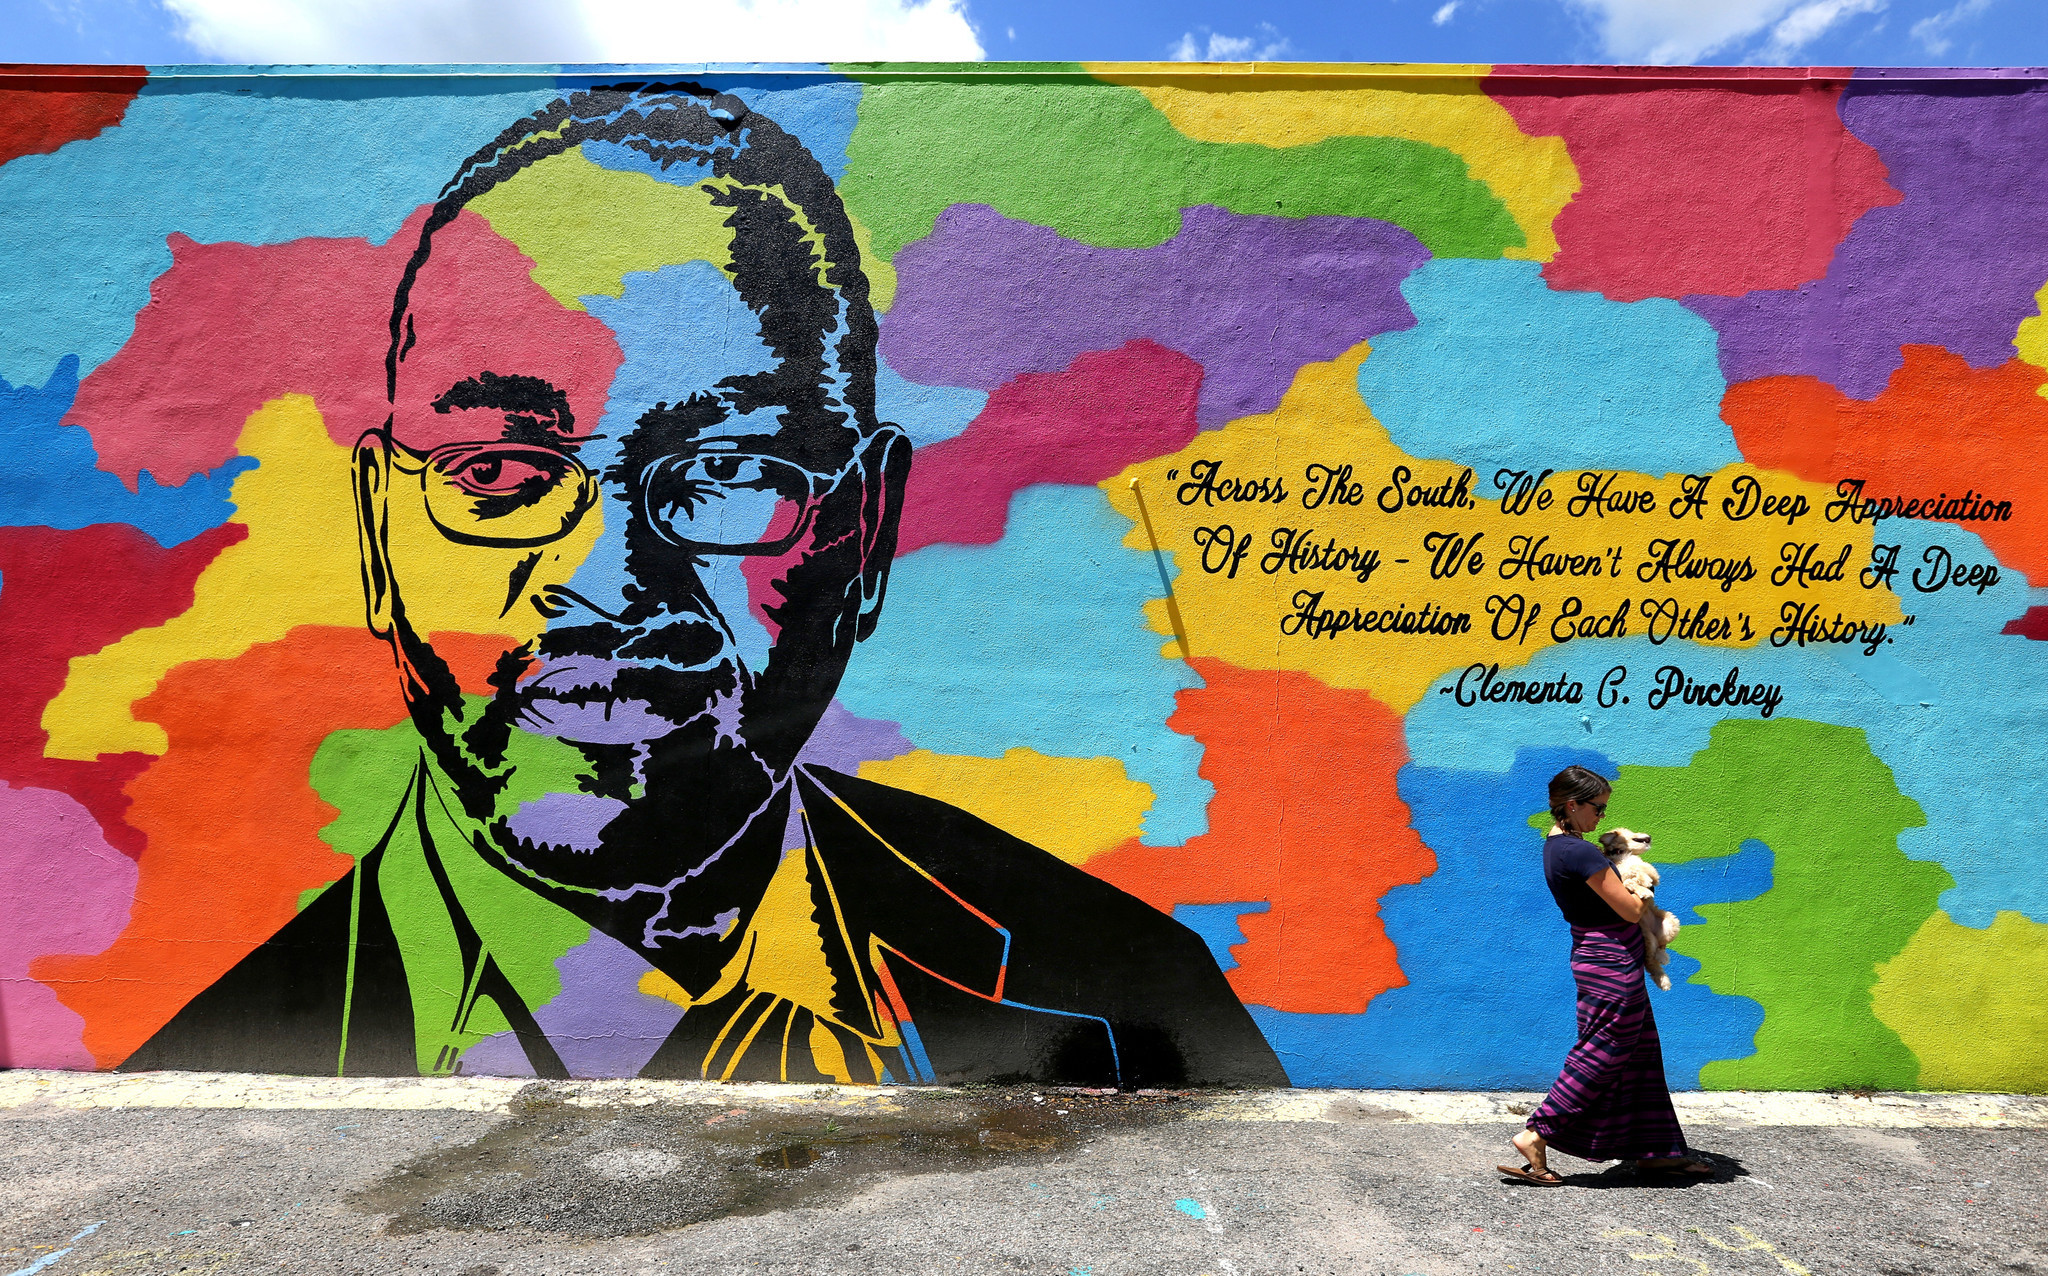 At the Redux Contemporary Art Center, a mural on the exterior memorializes the words of state senator and senior pastor Clementa C. Pinckney, who was killed in the church shooting.